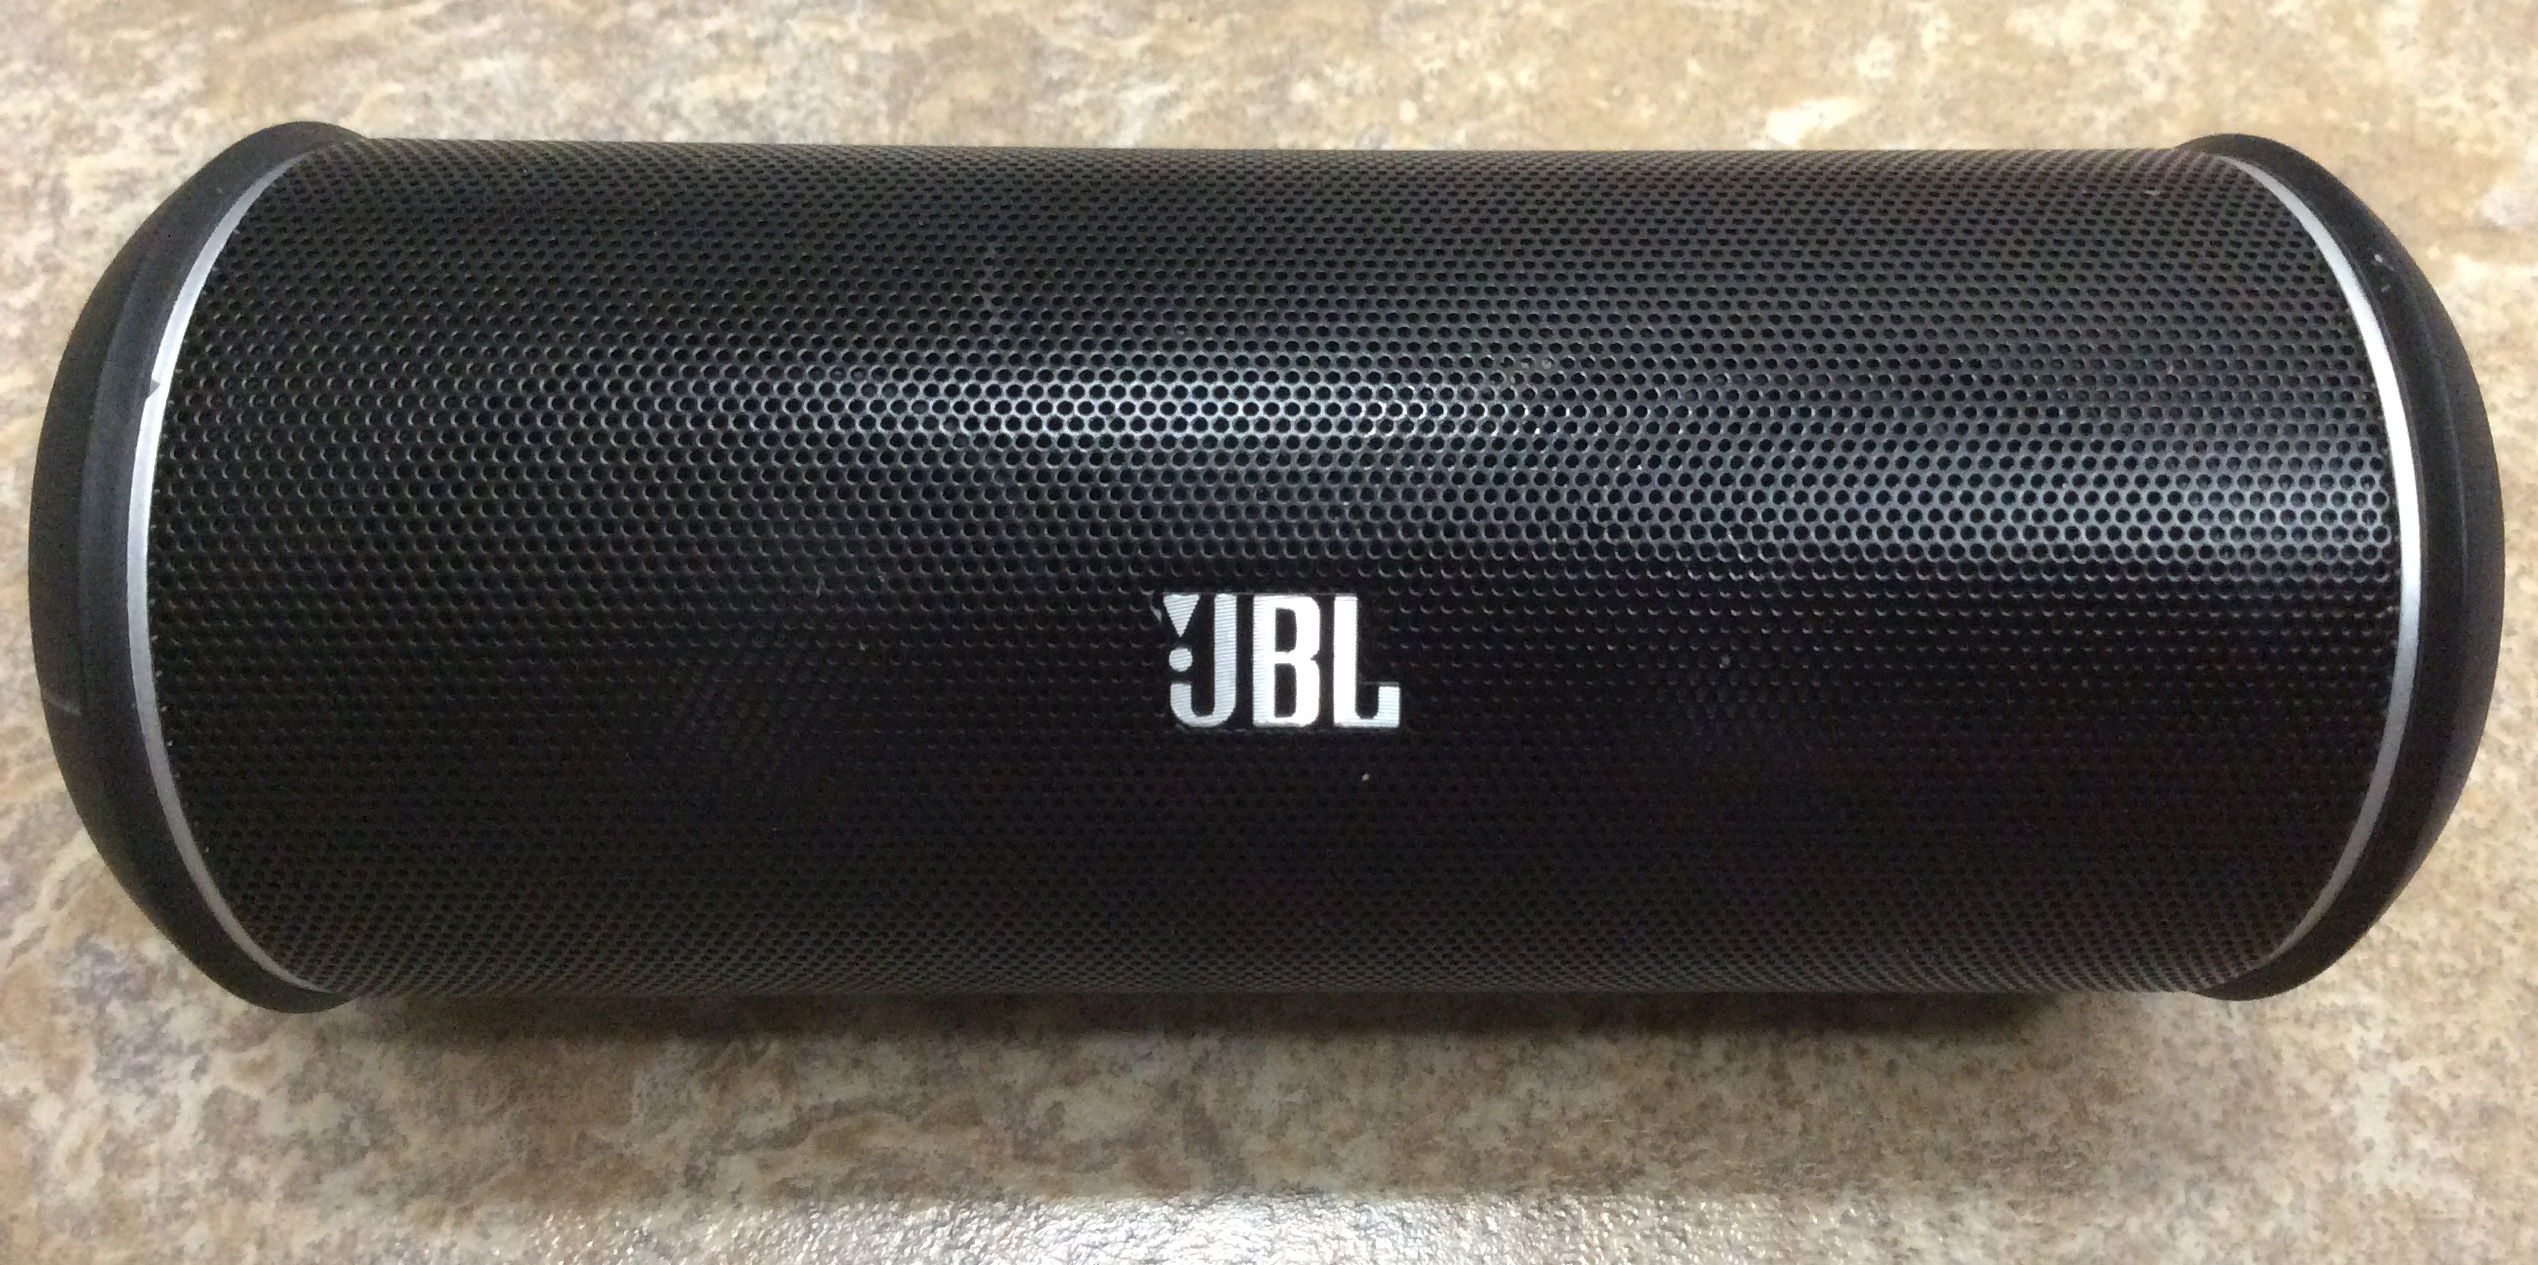 JBL Flip 2 Reset Instructions, How to Factory Hard Reset JBL Flip 2